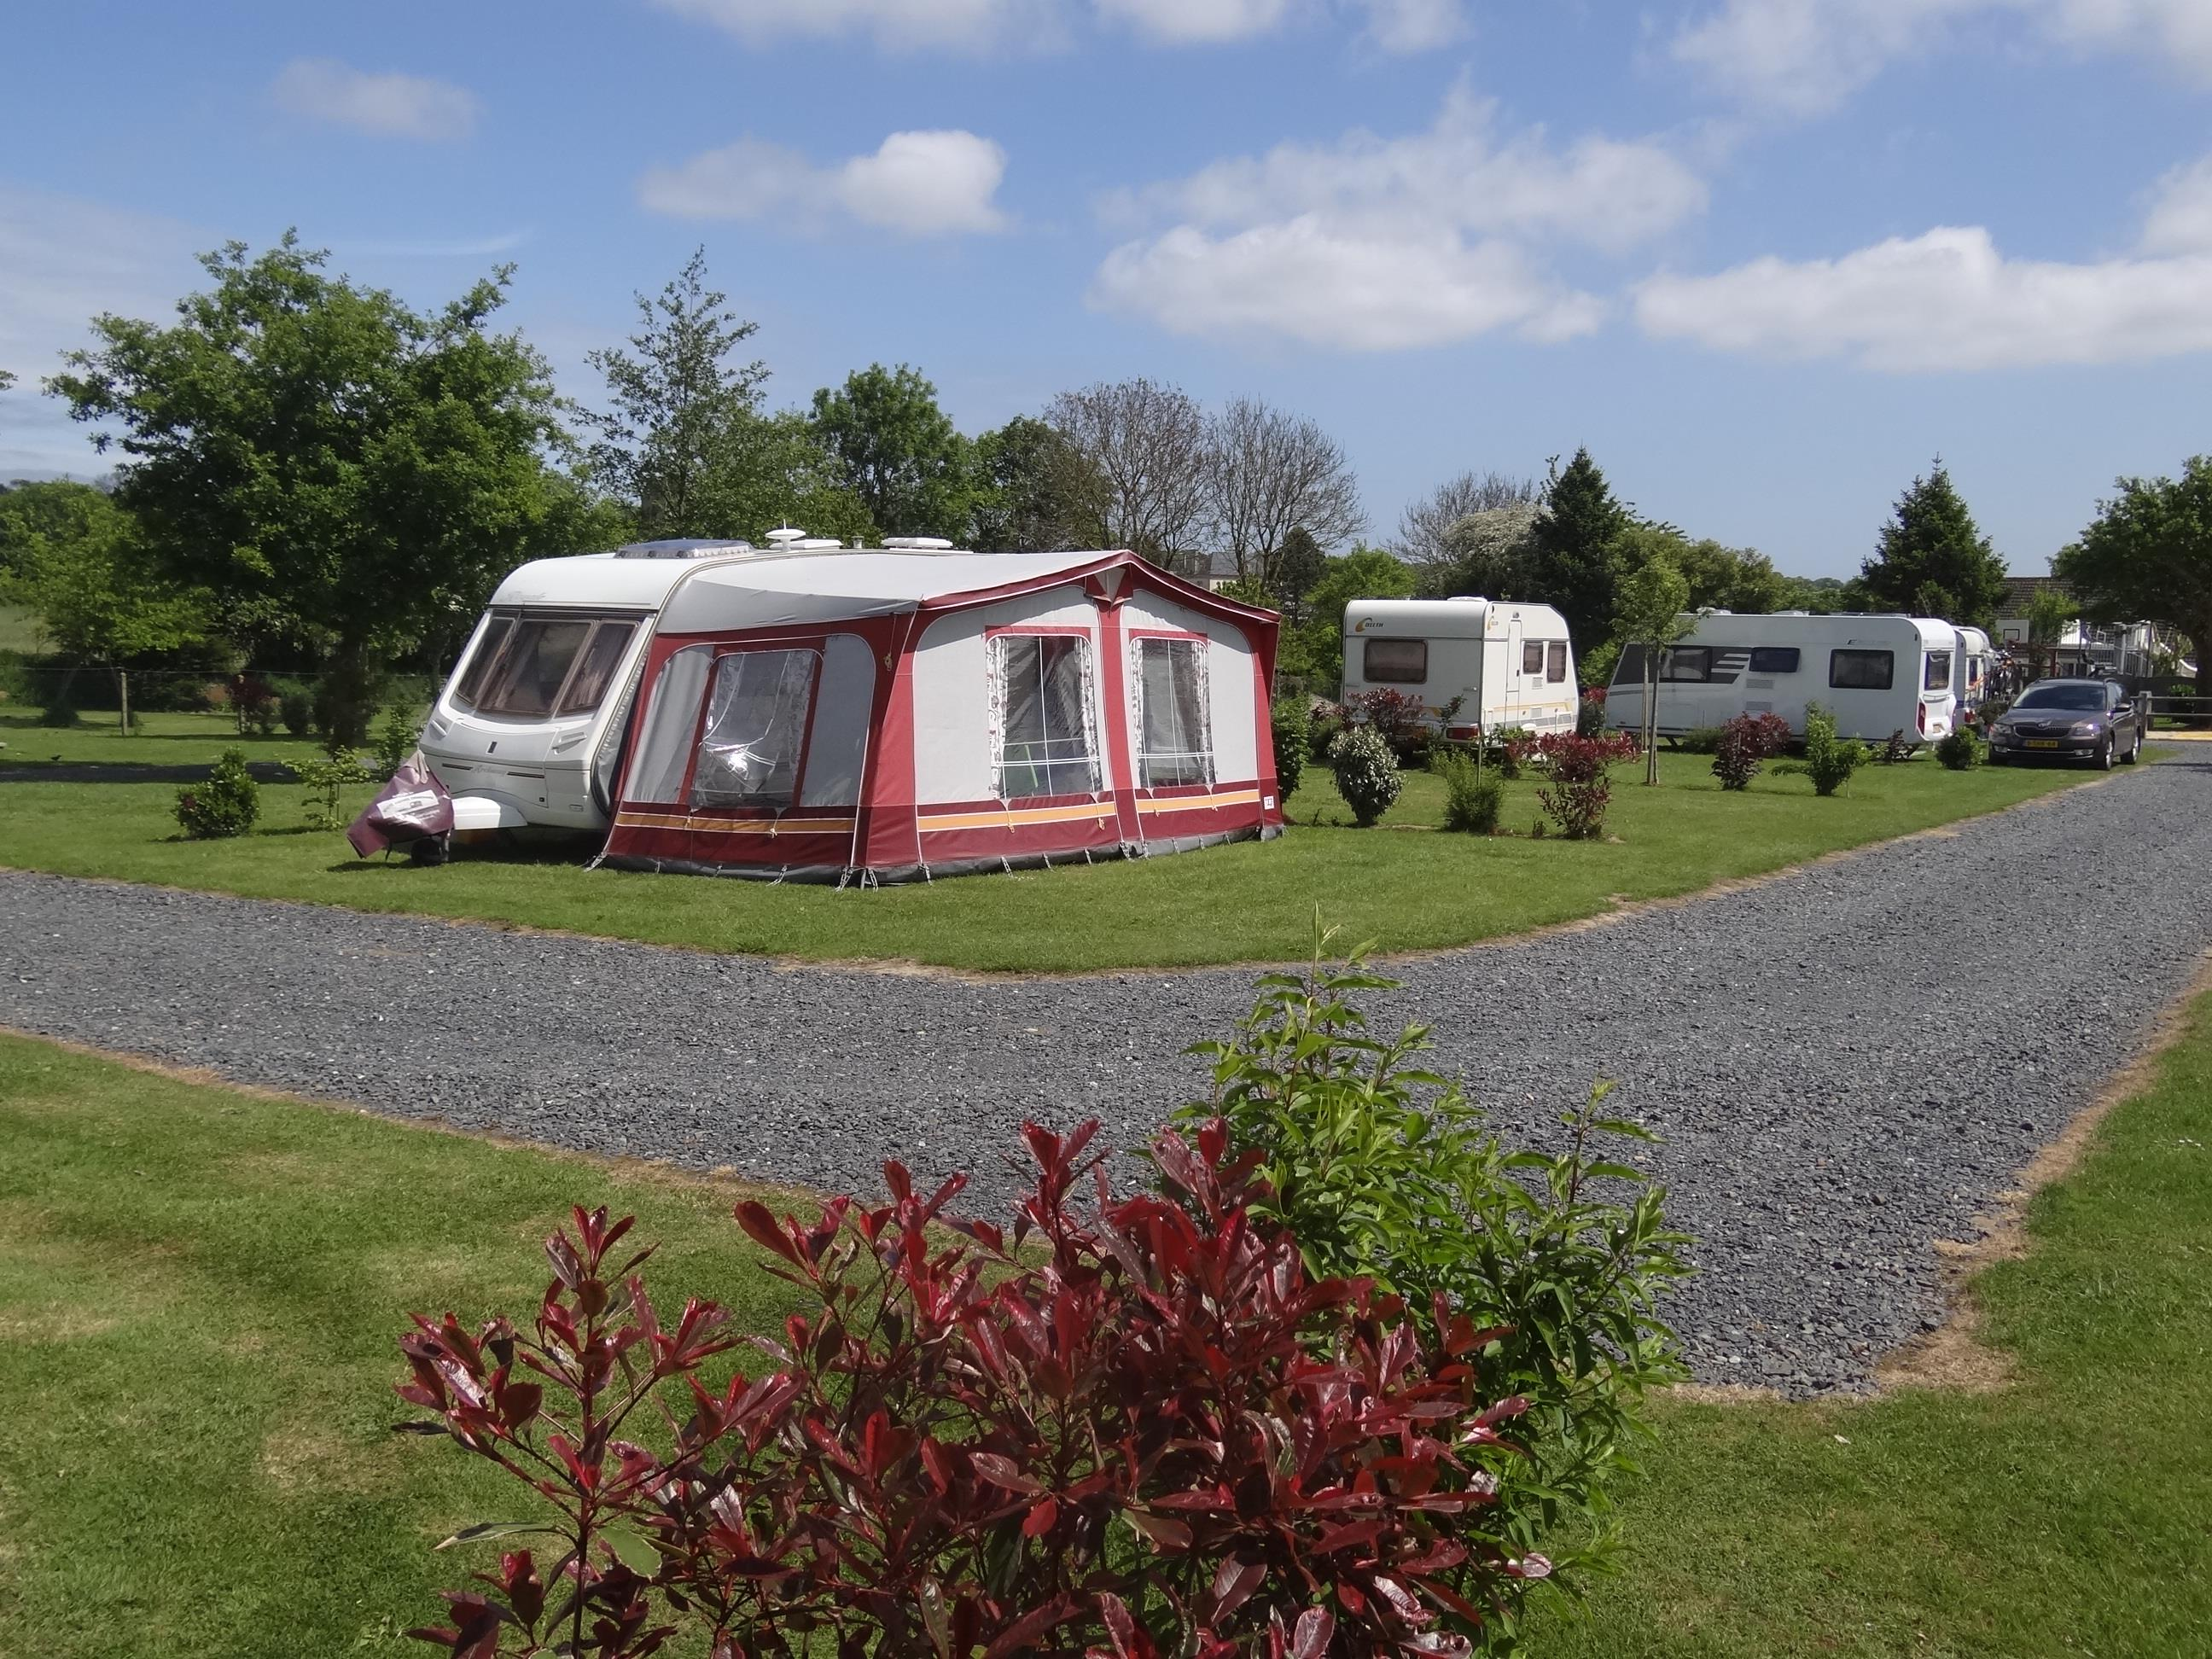 Emplacement Camping pour Tente, Caravane ou Camping-car 1 Pers.